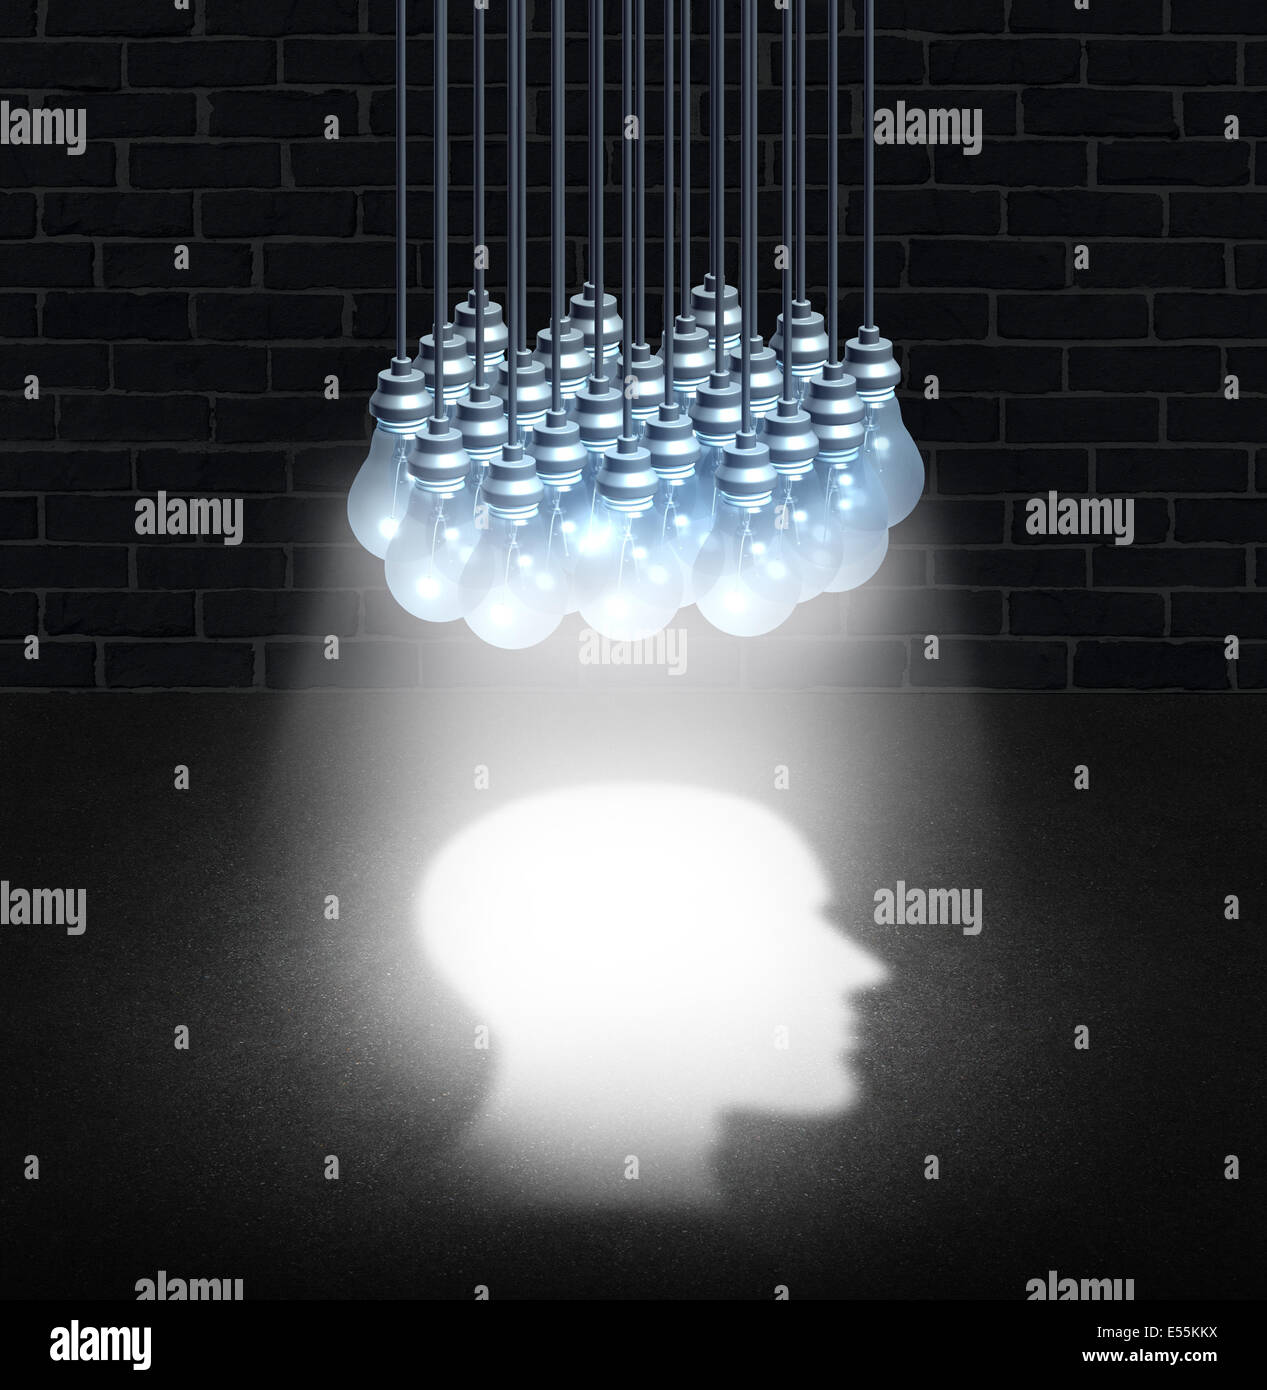 Thinking group and team work creativity concept as a bunch of lightbulbs working together shinning down light shaped - Stock Image